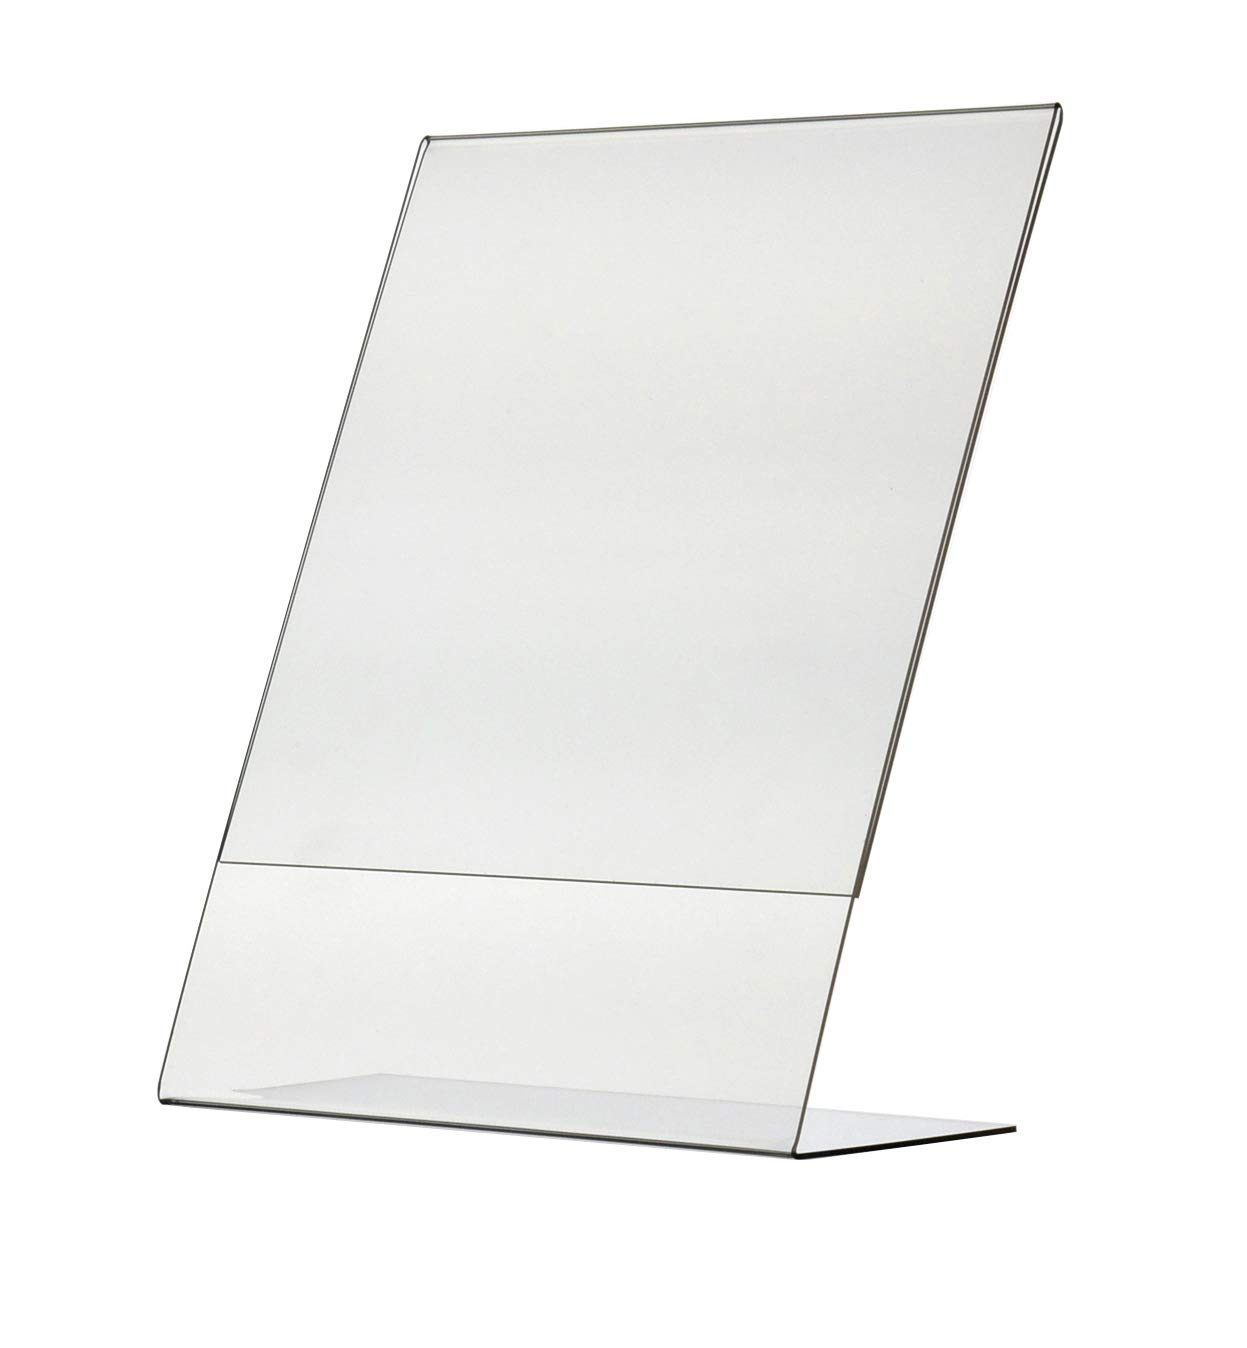 """Marketing Holders Sign Holder 8.5""""w x 11""""h Ad Flyer Frame Display Stand Table Top Slant Back 6 Lots of 10 Totaling 60"""